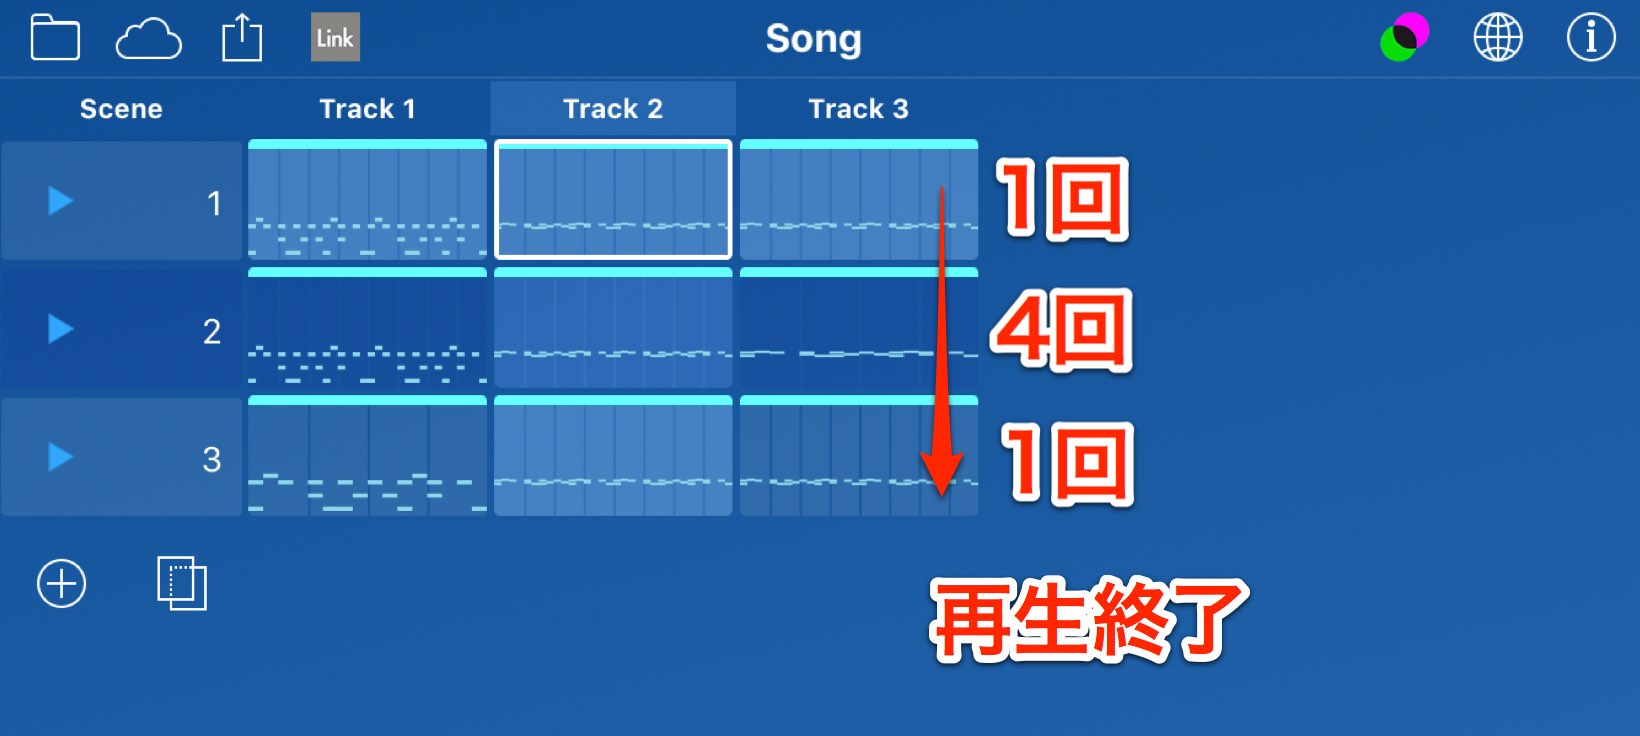 Song-7